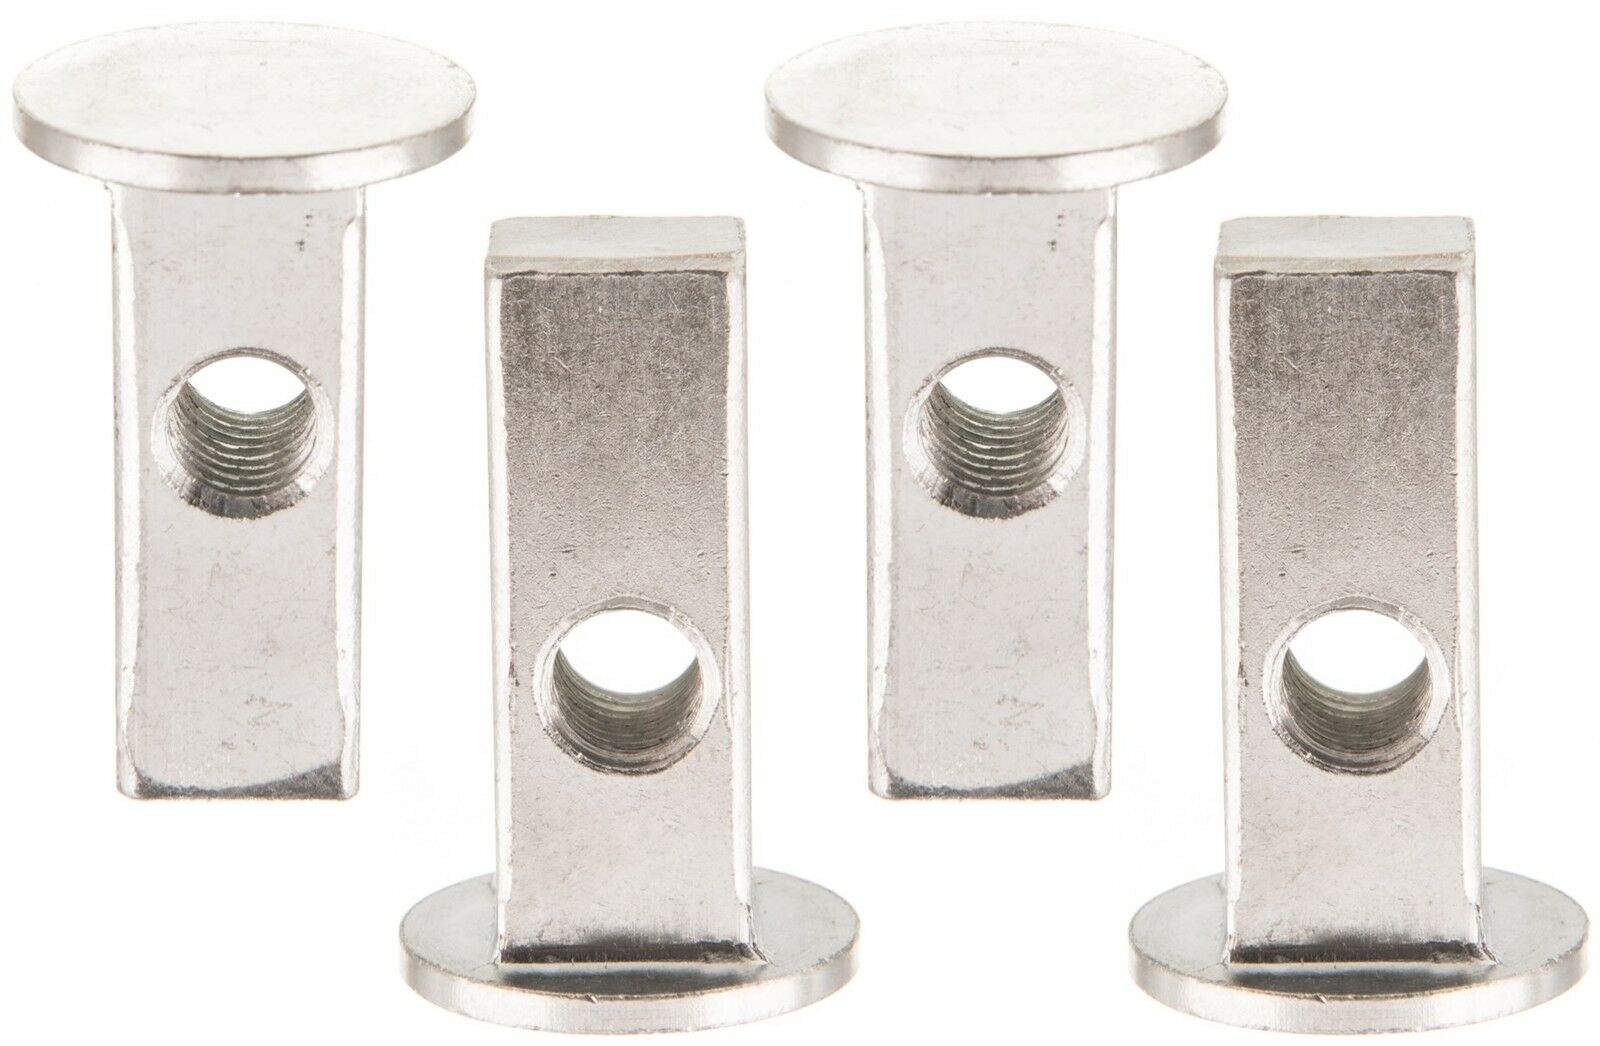 New Replacement Set Of 4 Bed Bunk Bed Bolts 4 Square Nuts Free